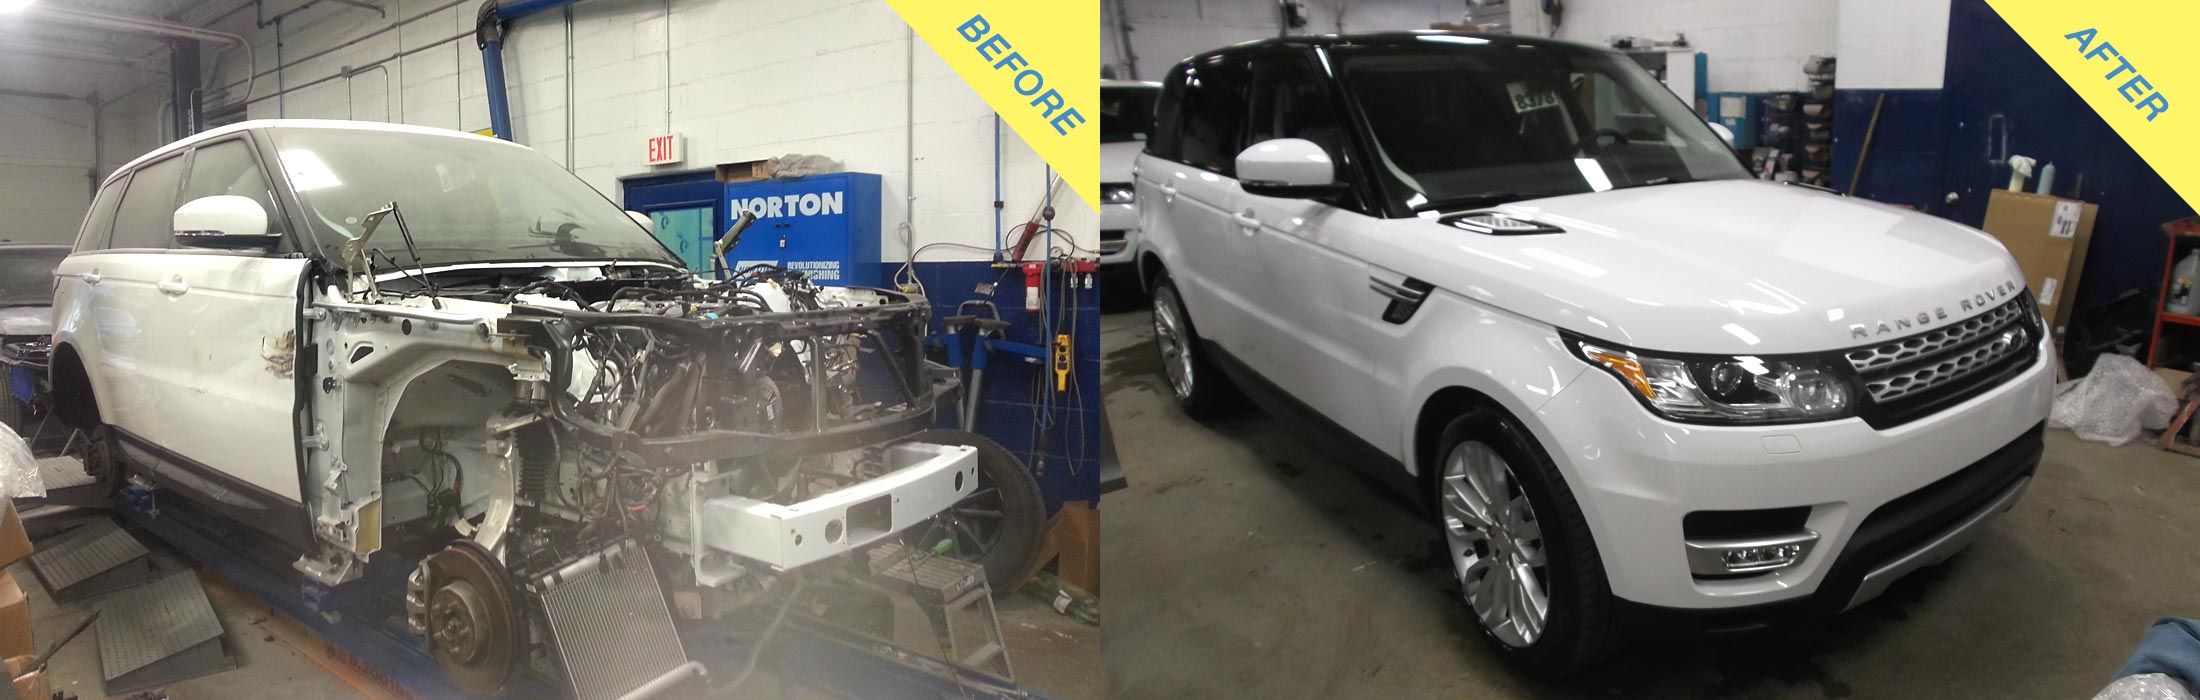 beforeandafter_car_1